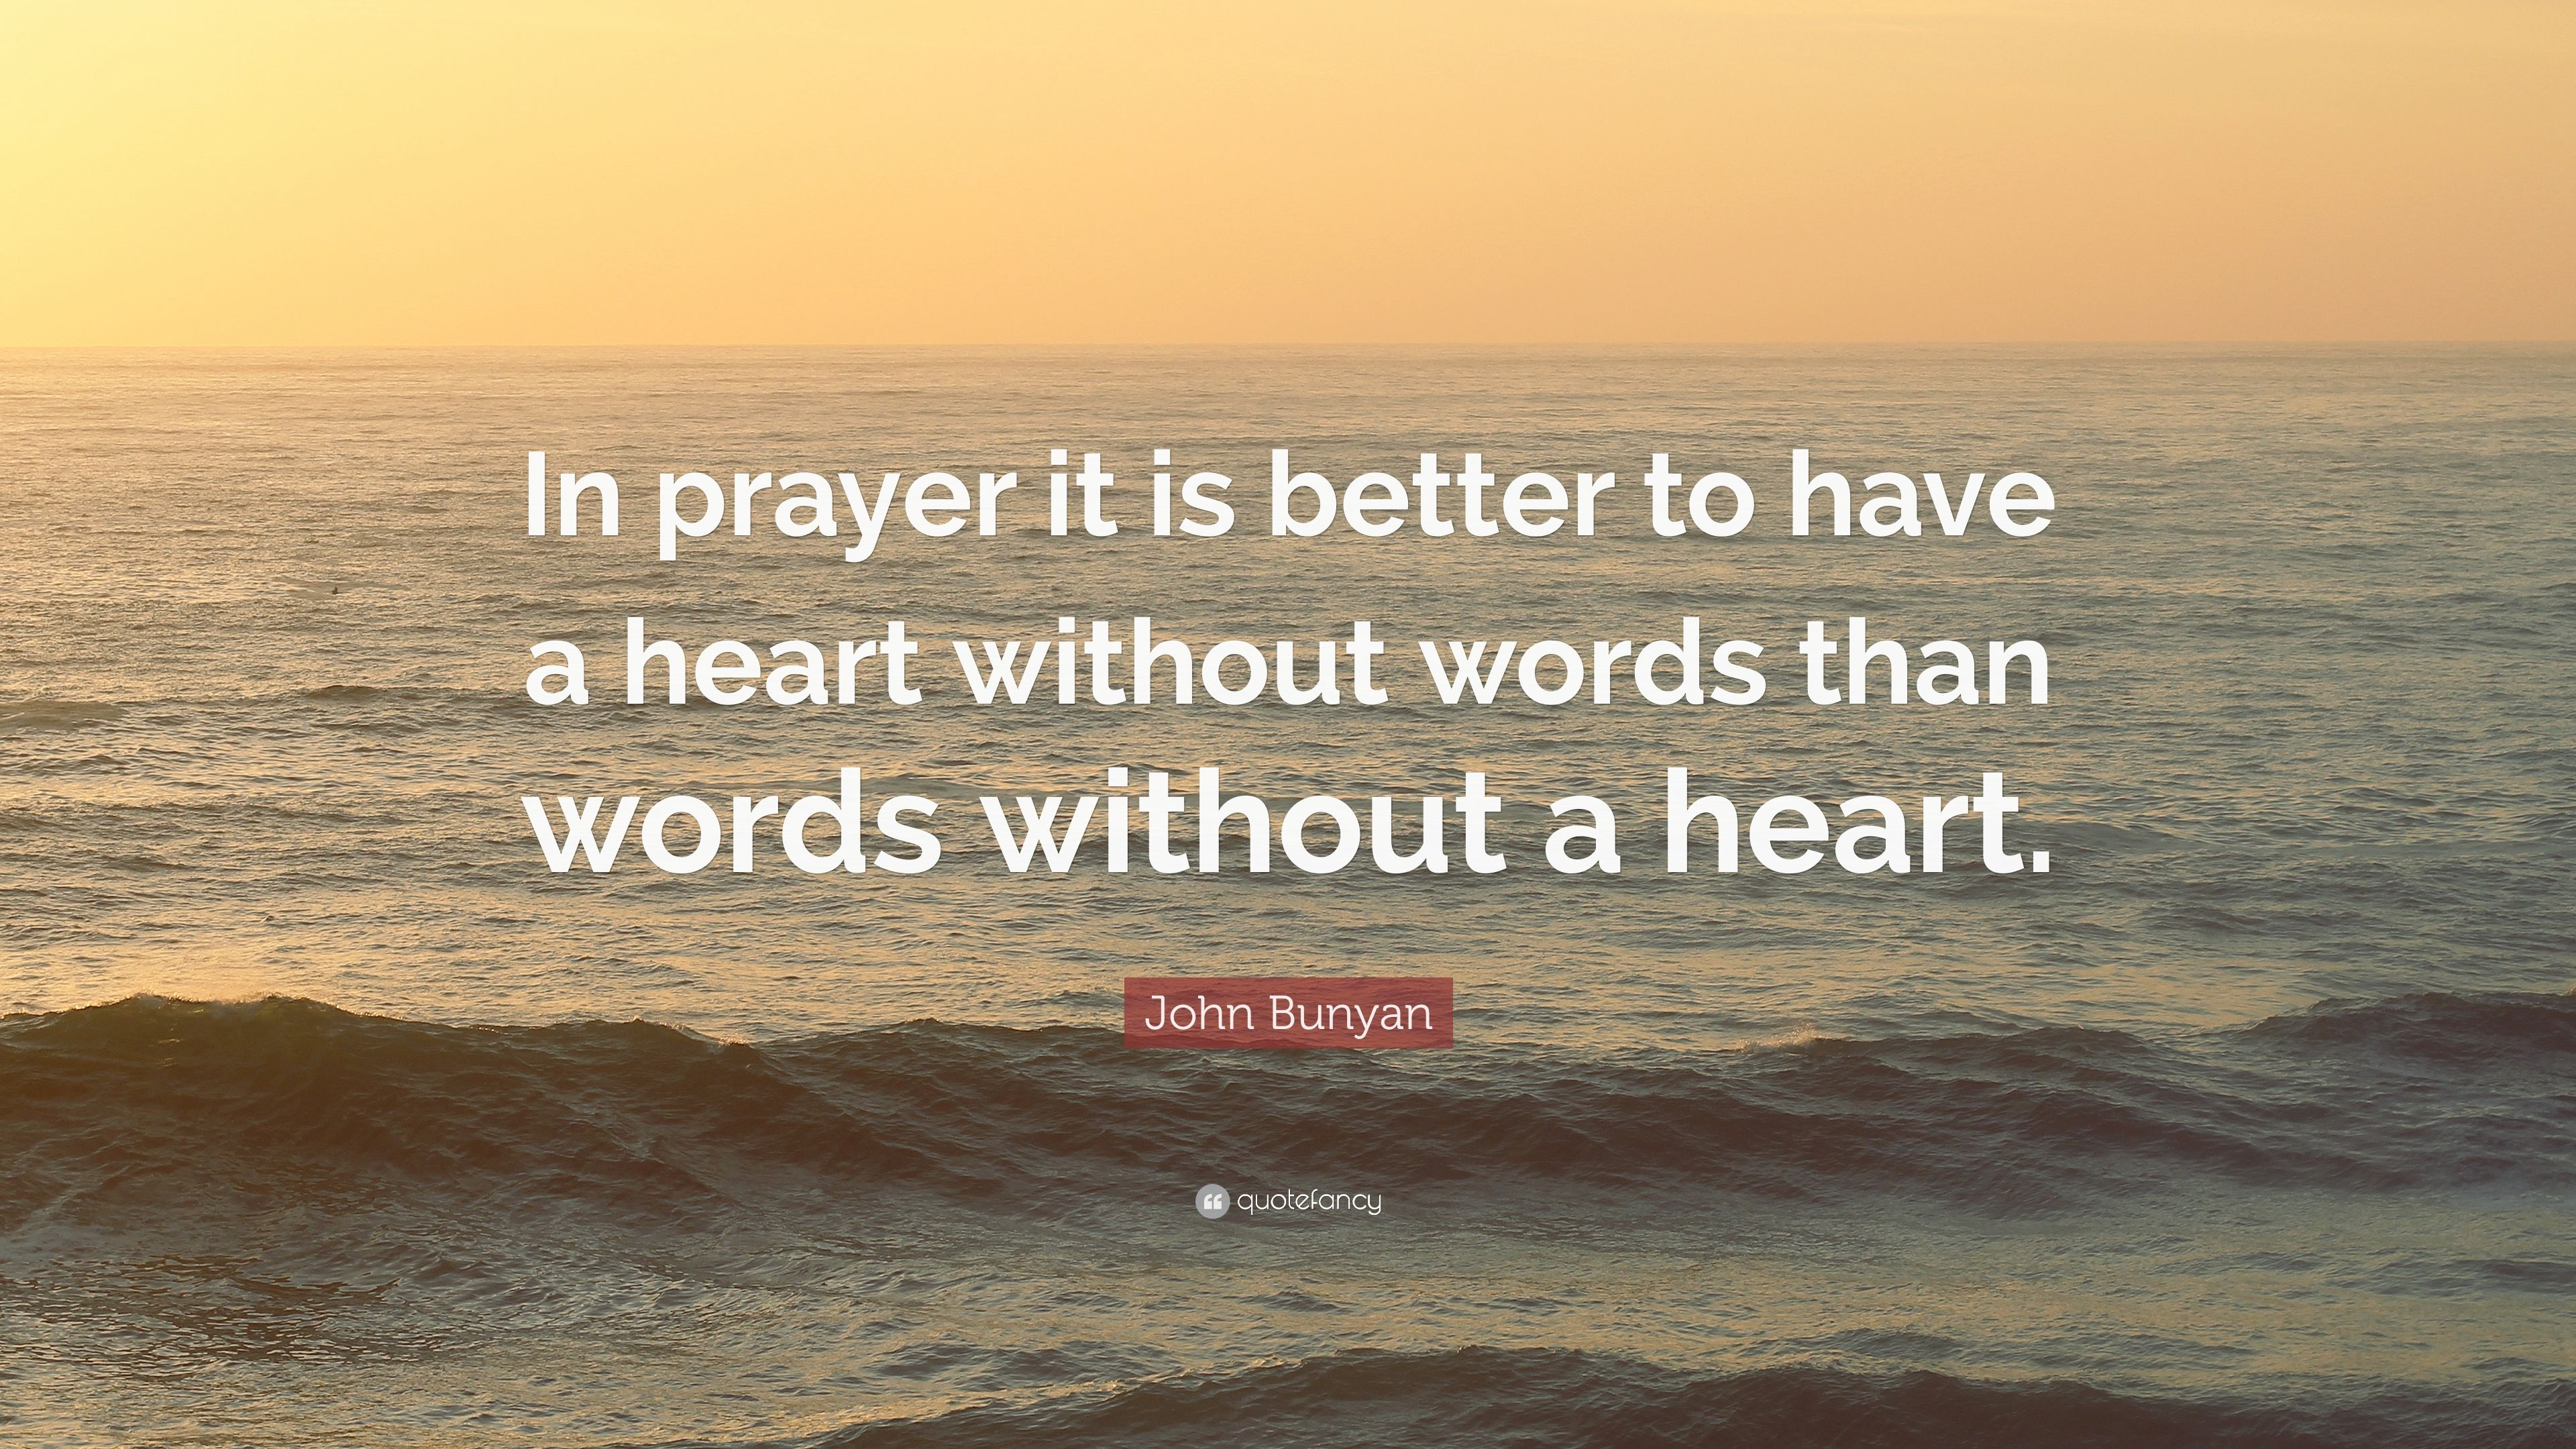 Image result for images of quotes on prayer better to have heart without words